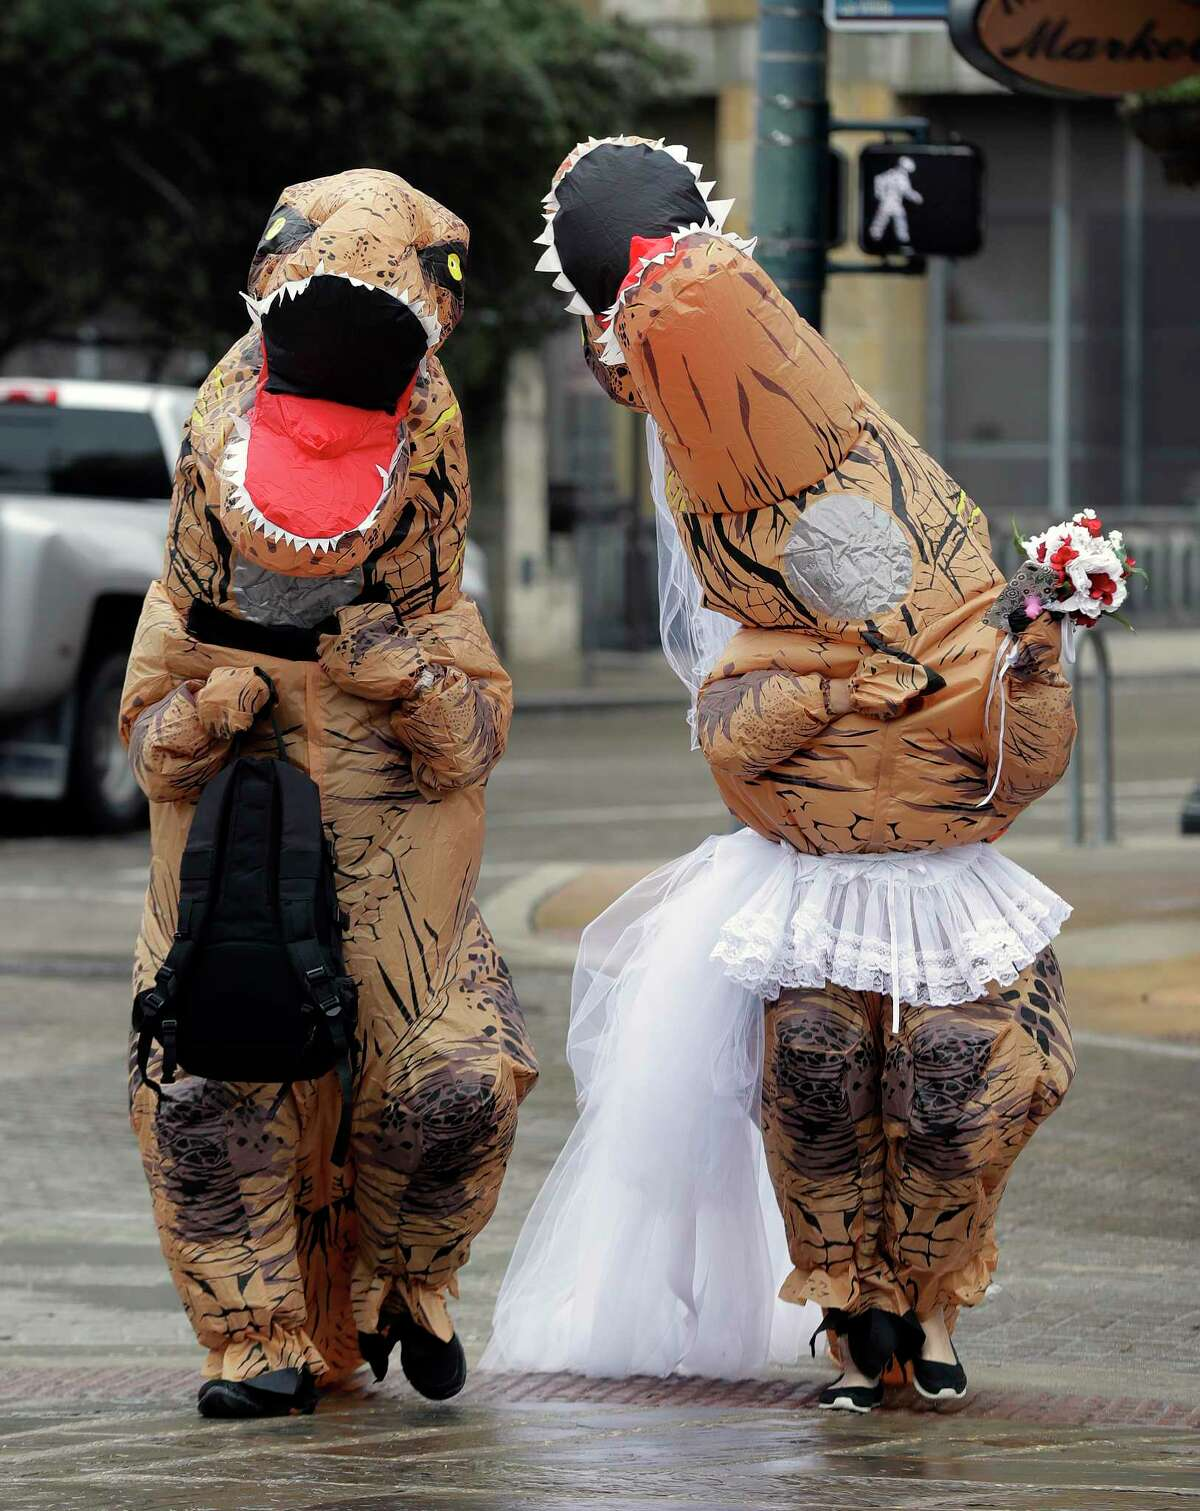 Brian and Tanya Hankinson arrive at the Bexar County Courthouse dressed in dinosaur costumes, Wednesday, Feb. 14, 2018, in San Antonio. The couple took part in a Valentine's Day mass wedding of more than 40 couples at the courthouse. (AP Photo/Eric Gay)